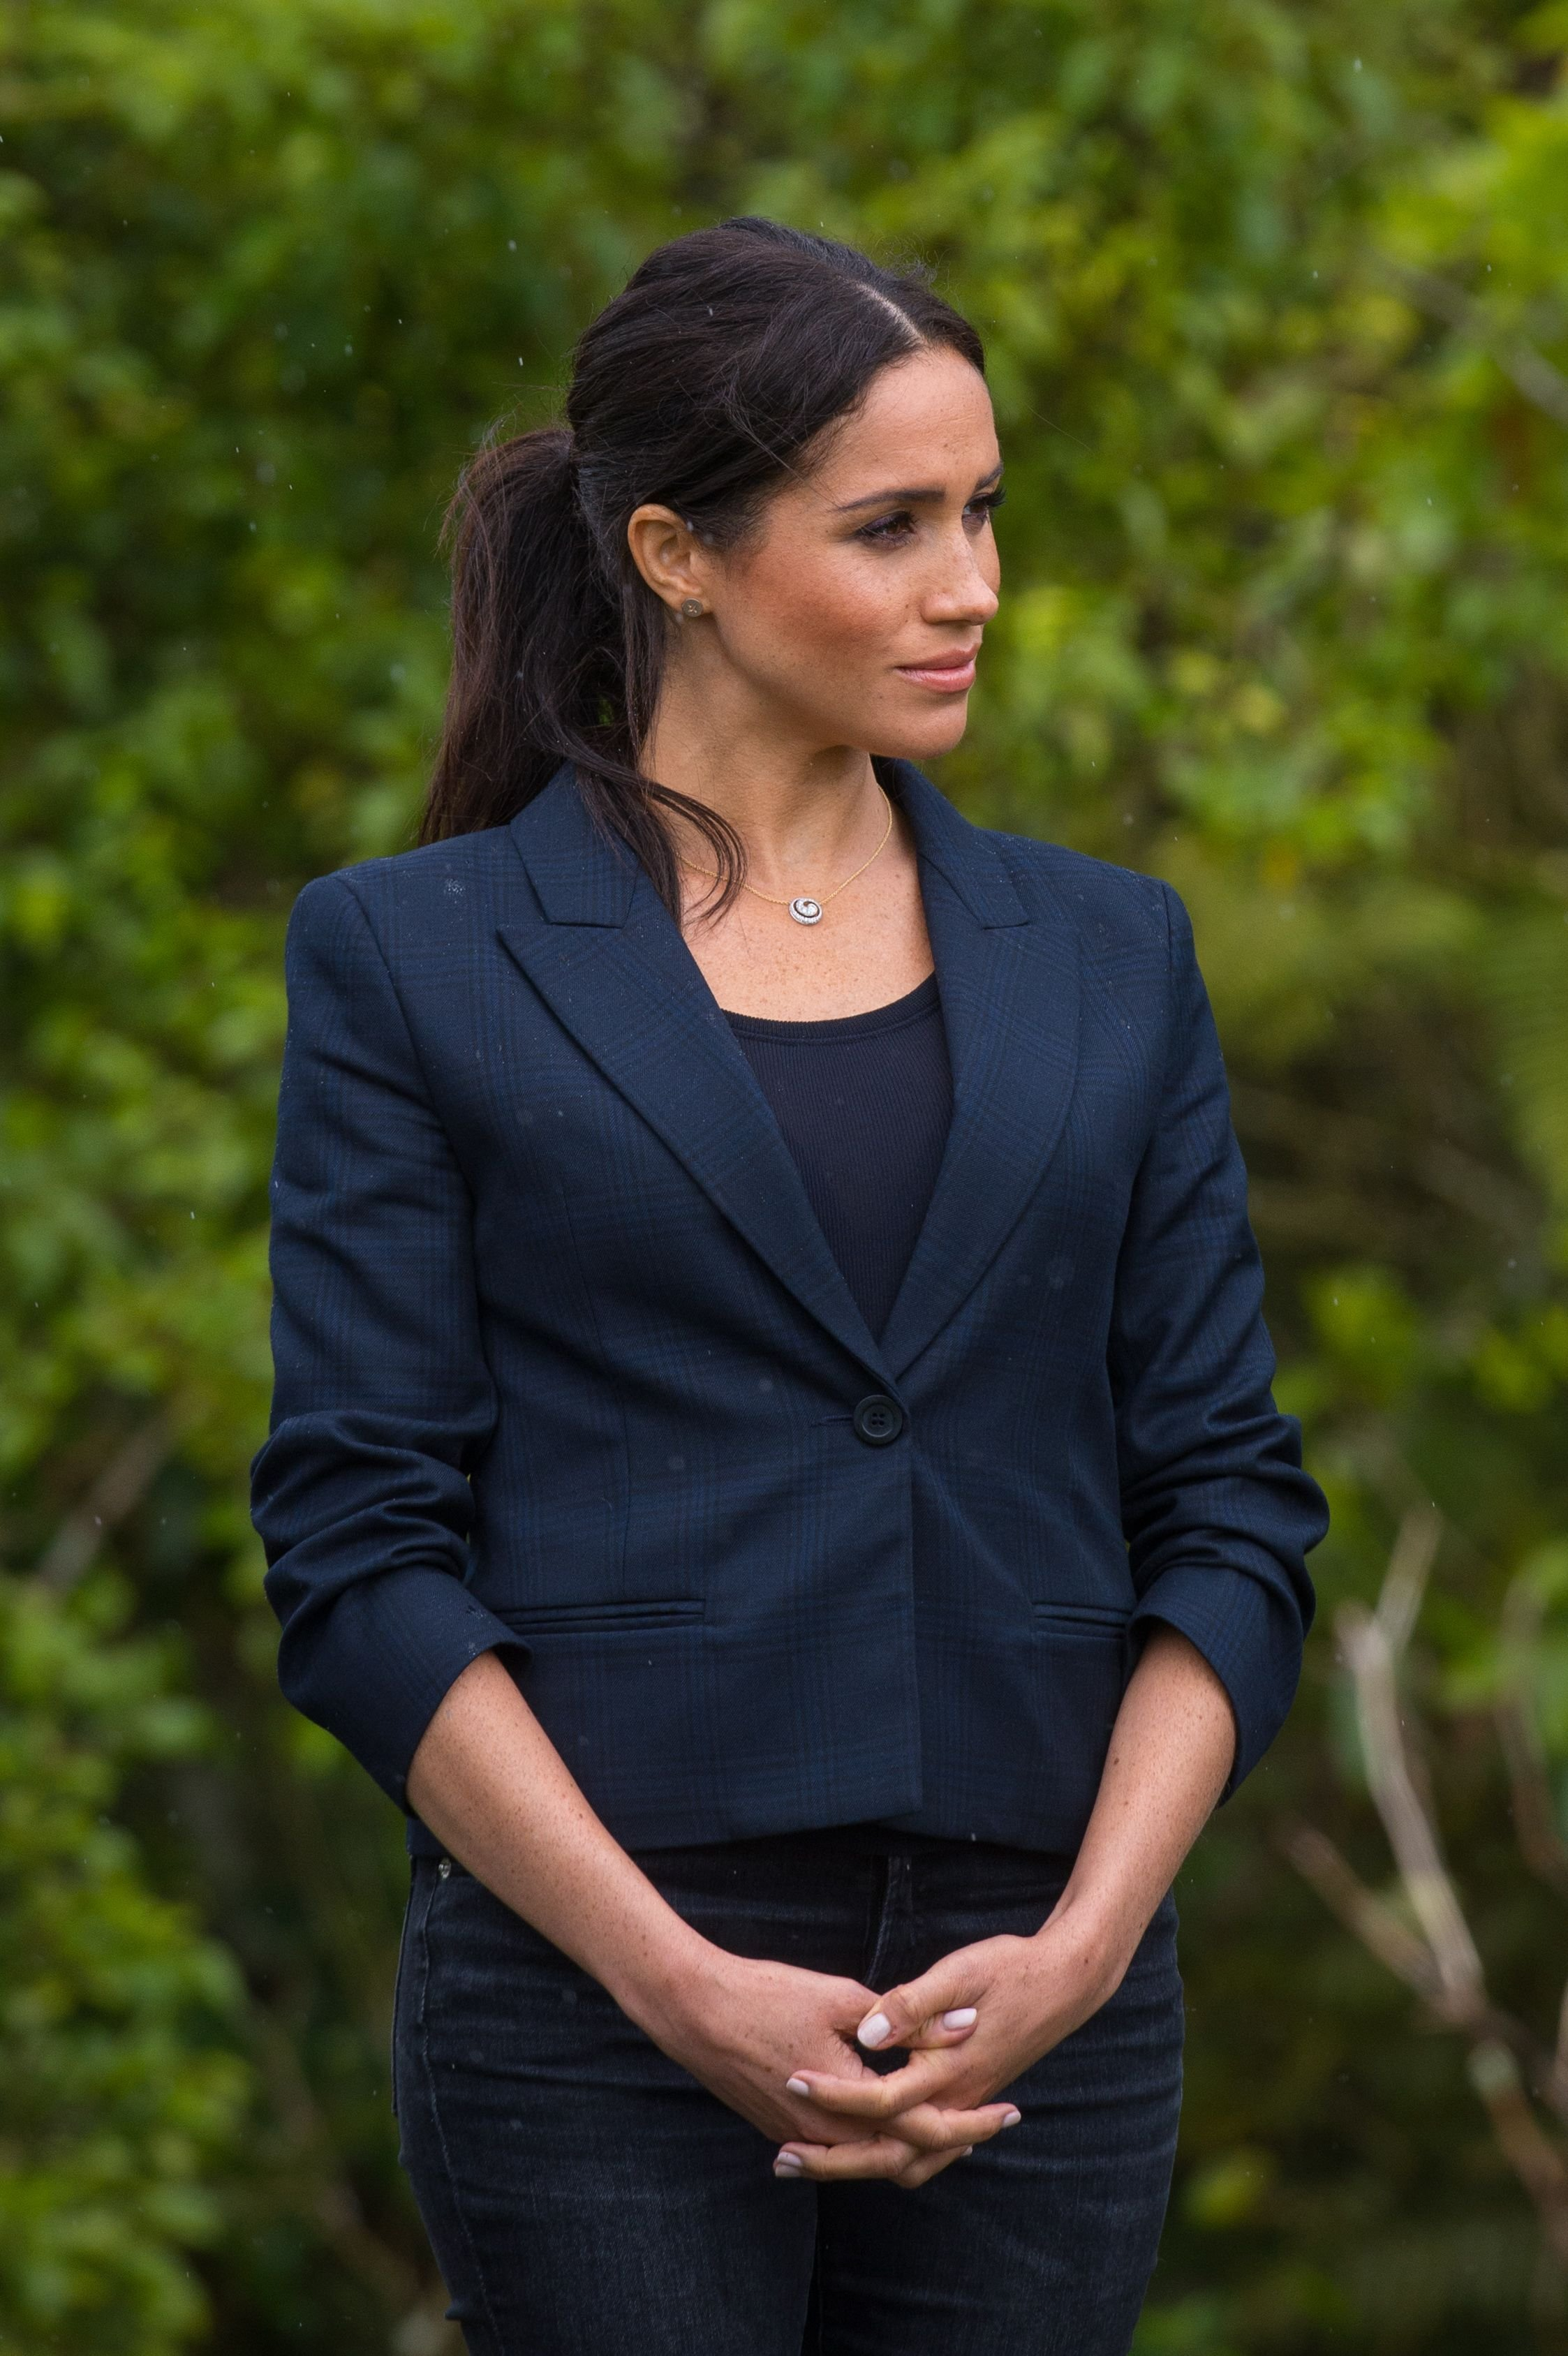 Duchess Meghan at the unveiling of The Queen's Commonwealth Canopy in Redvale on October 30, 2018, in Auckland, New Zealand | Photo: Dominic Lipinski - Pool/Getty Images